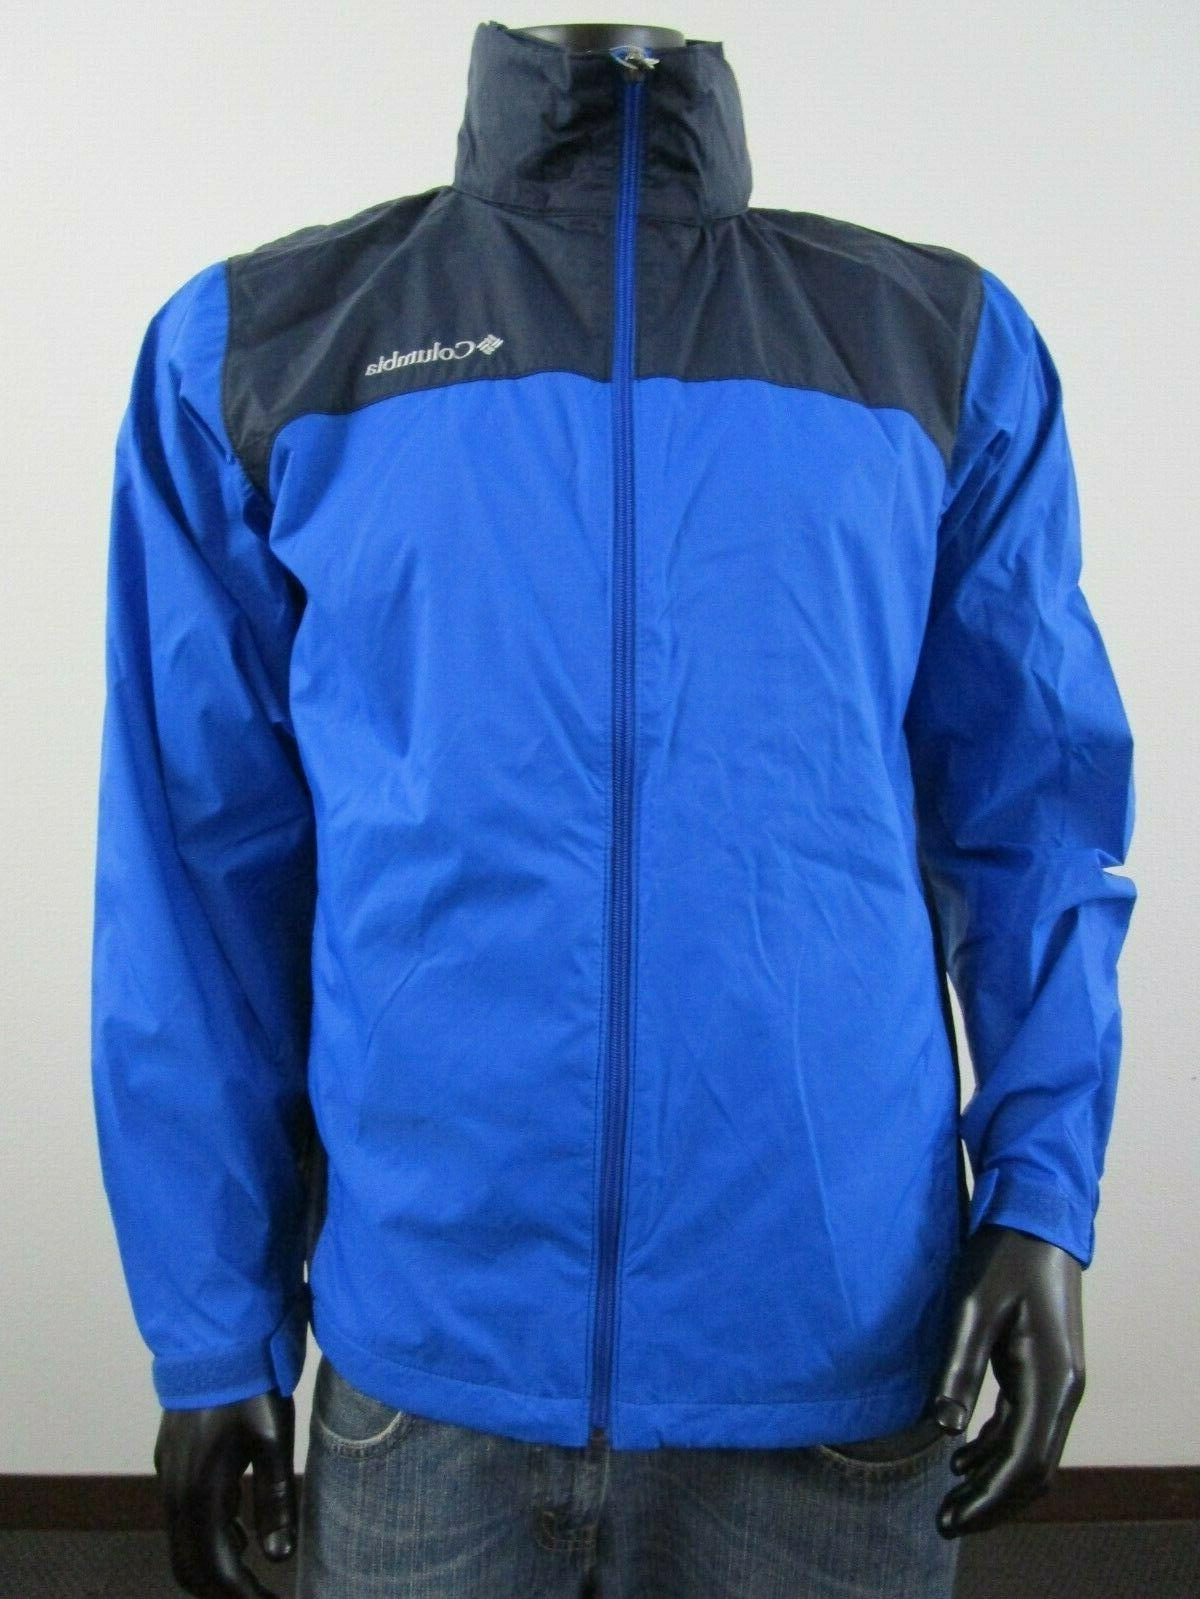 nwt mens s m xl raincreek falls